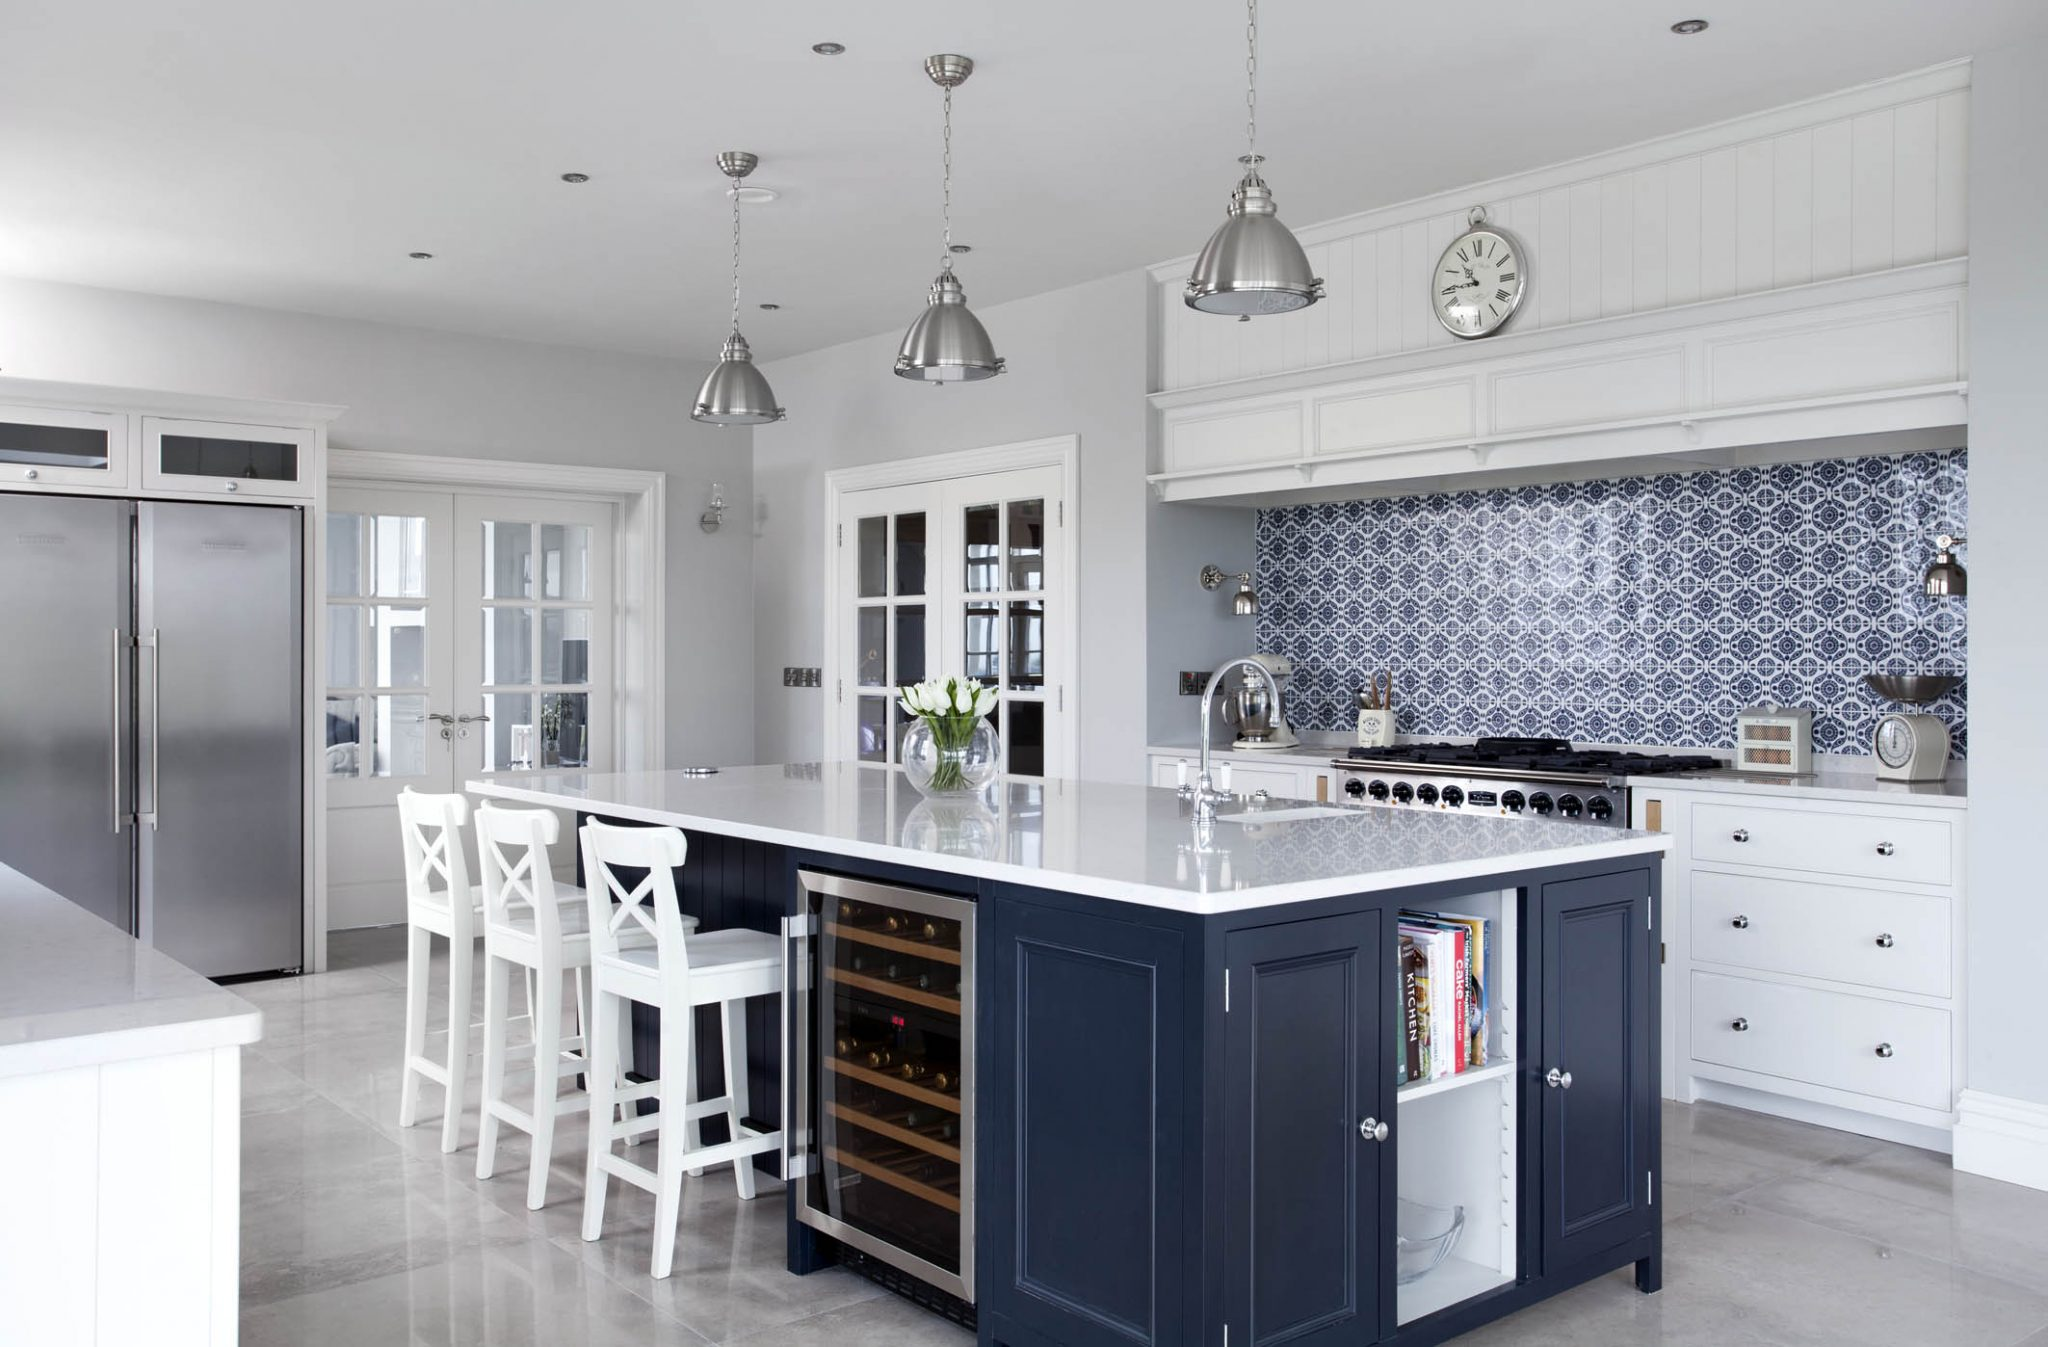 kitchen design chichester neptune chichester kitchen design by deanery furniture 292